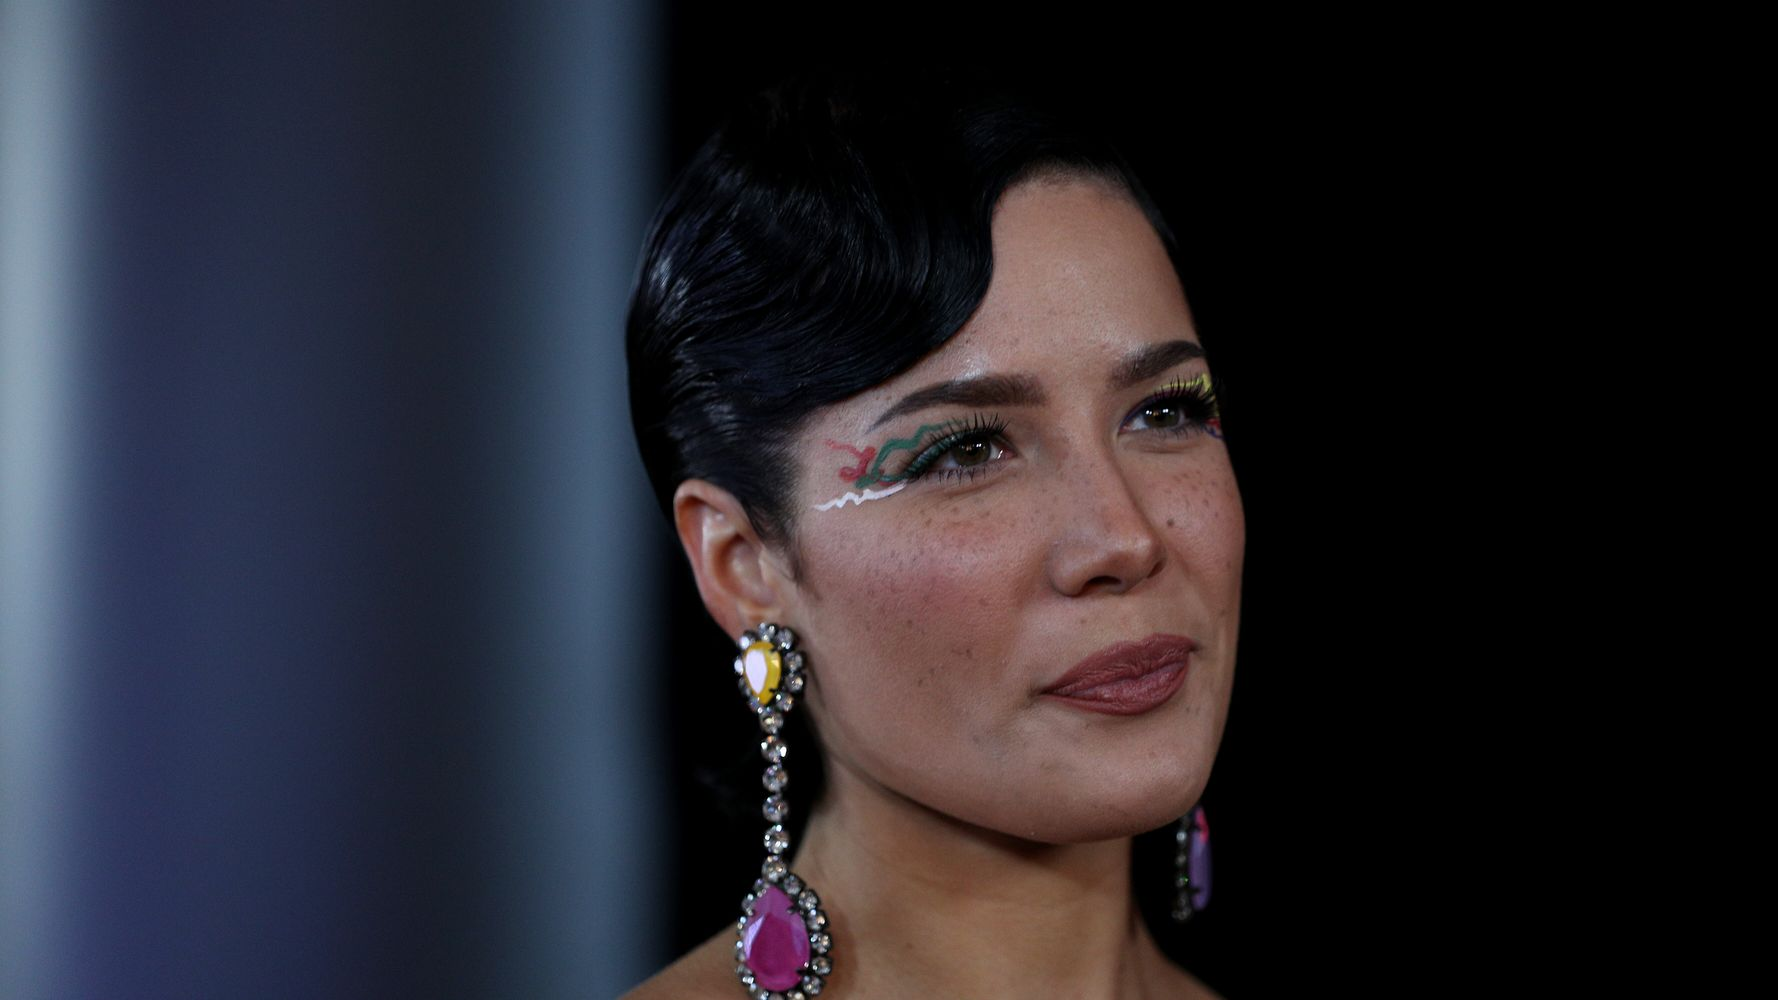 Westlake Legal Group 5e3849c2230000fa066ed215 Halsey Slams Instagram Haters: 'I'm Not A Real Human Being To You'